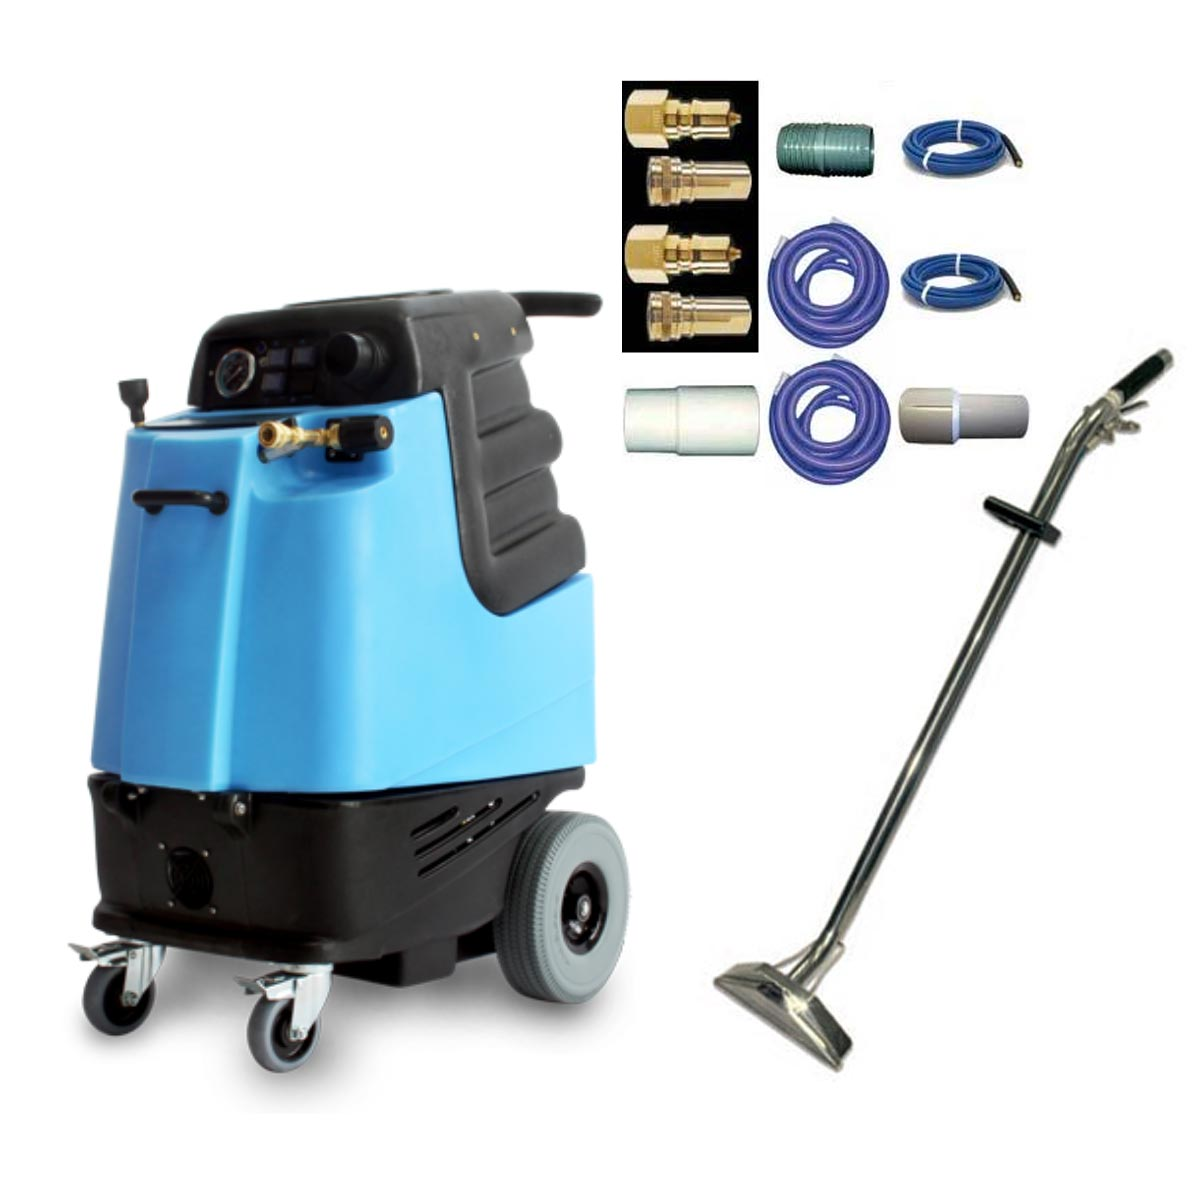 Mytee 1005LX Carpet Cleaning Machine 12gal 500psi Dual 6.6 Vacuum Extractor 65 ft Hose Set Wand Chemicals More